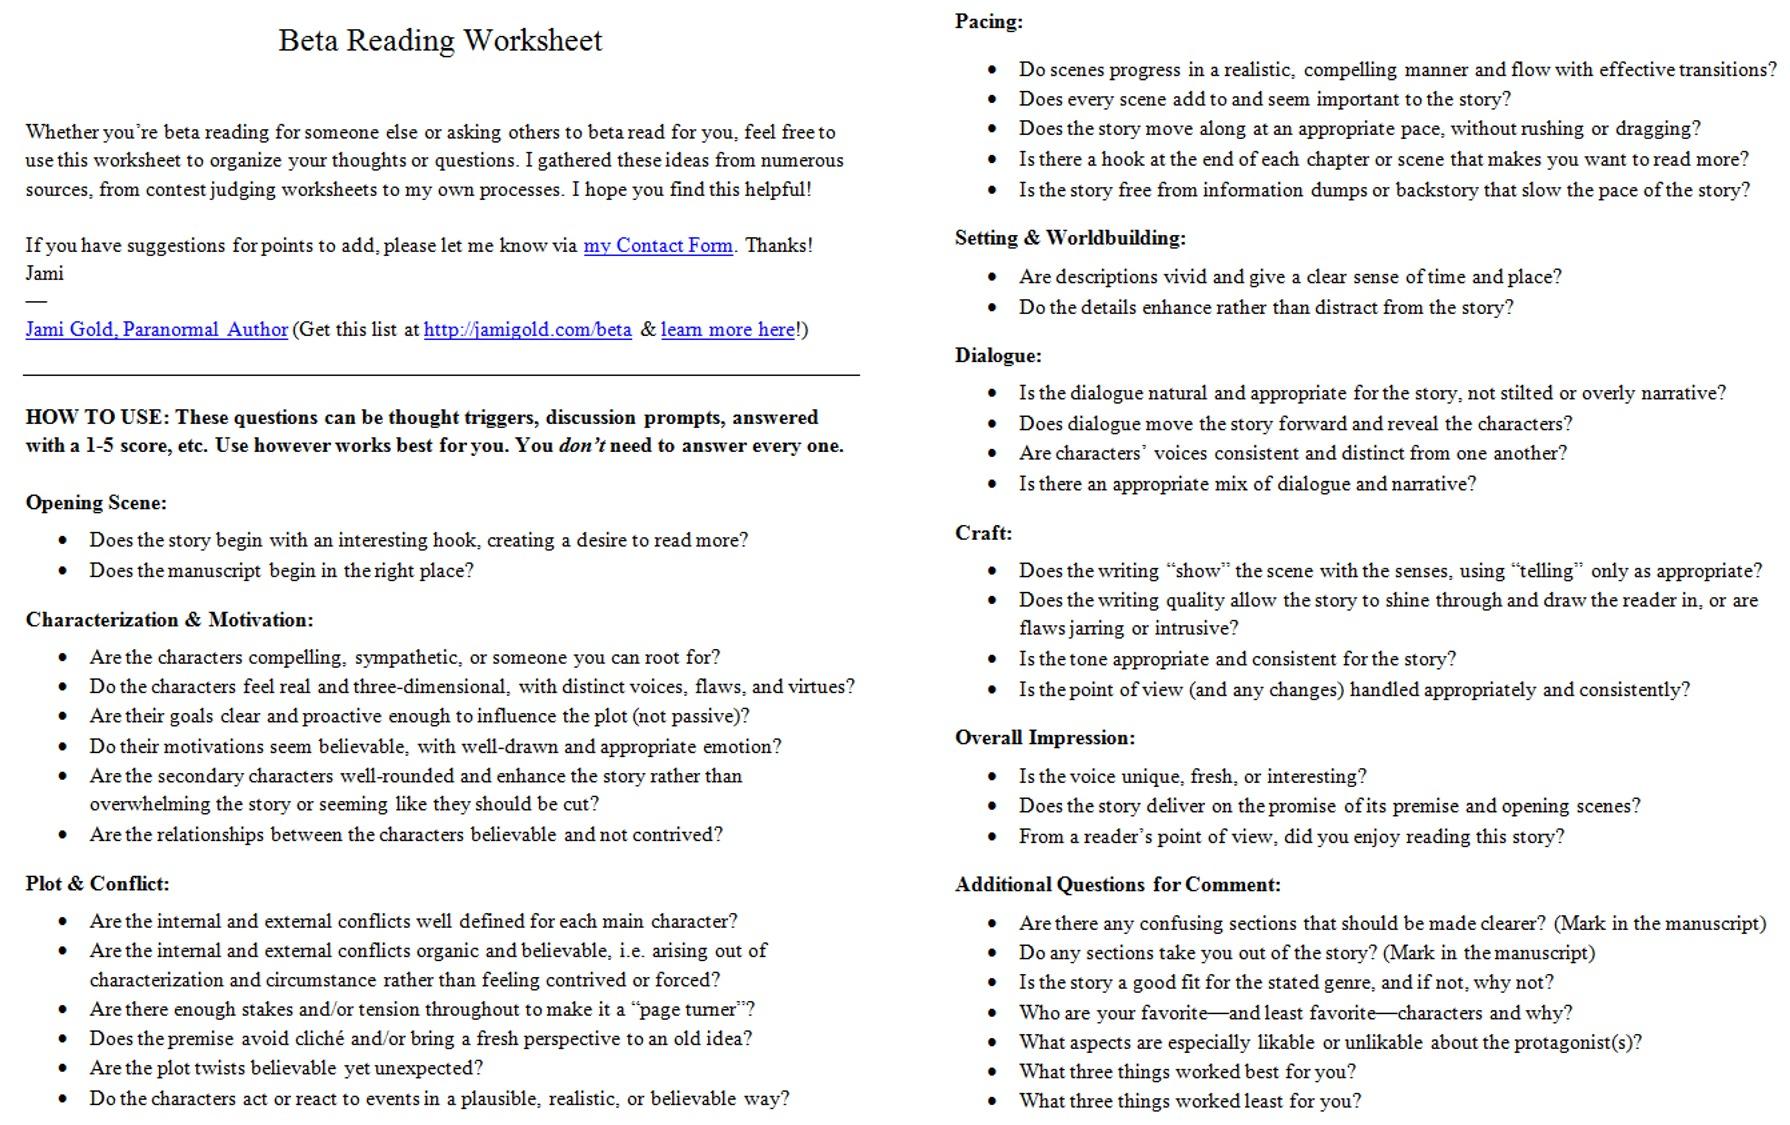 Proatmealus  Pretty Worksheets For Writers  Jami Gold Paranormal Author With Glamorous Screen Shot Of The Twopage Beta Reading Worksheet With Awesome Relative Pronouns Worksheet Also Adding And Subtracting Fractions With Unlike Denominators Worksheet In Addition Halloween Worksheets Free And Personal Finance Worksheets As Well As Noun Verb Adjective Worksheet Additionally Same Day Taxpayer Worksheet From Jamigoldcom With Proatmealus  Glamorous Worksheets For Writers  Jami Gold Paranormal Author With Awesome Screen Shot Of The Twopage Beta Reading Worksheet And Pretty Relative Pronouns Worksheet Also Adding And Subtracting Fractions With Unlike Denominators Worksheet In Addition Halloween Worksheets Free From Jamigoldcom